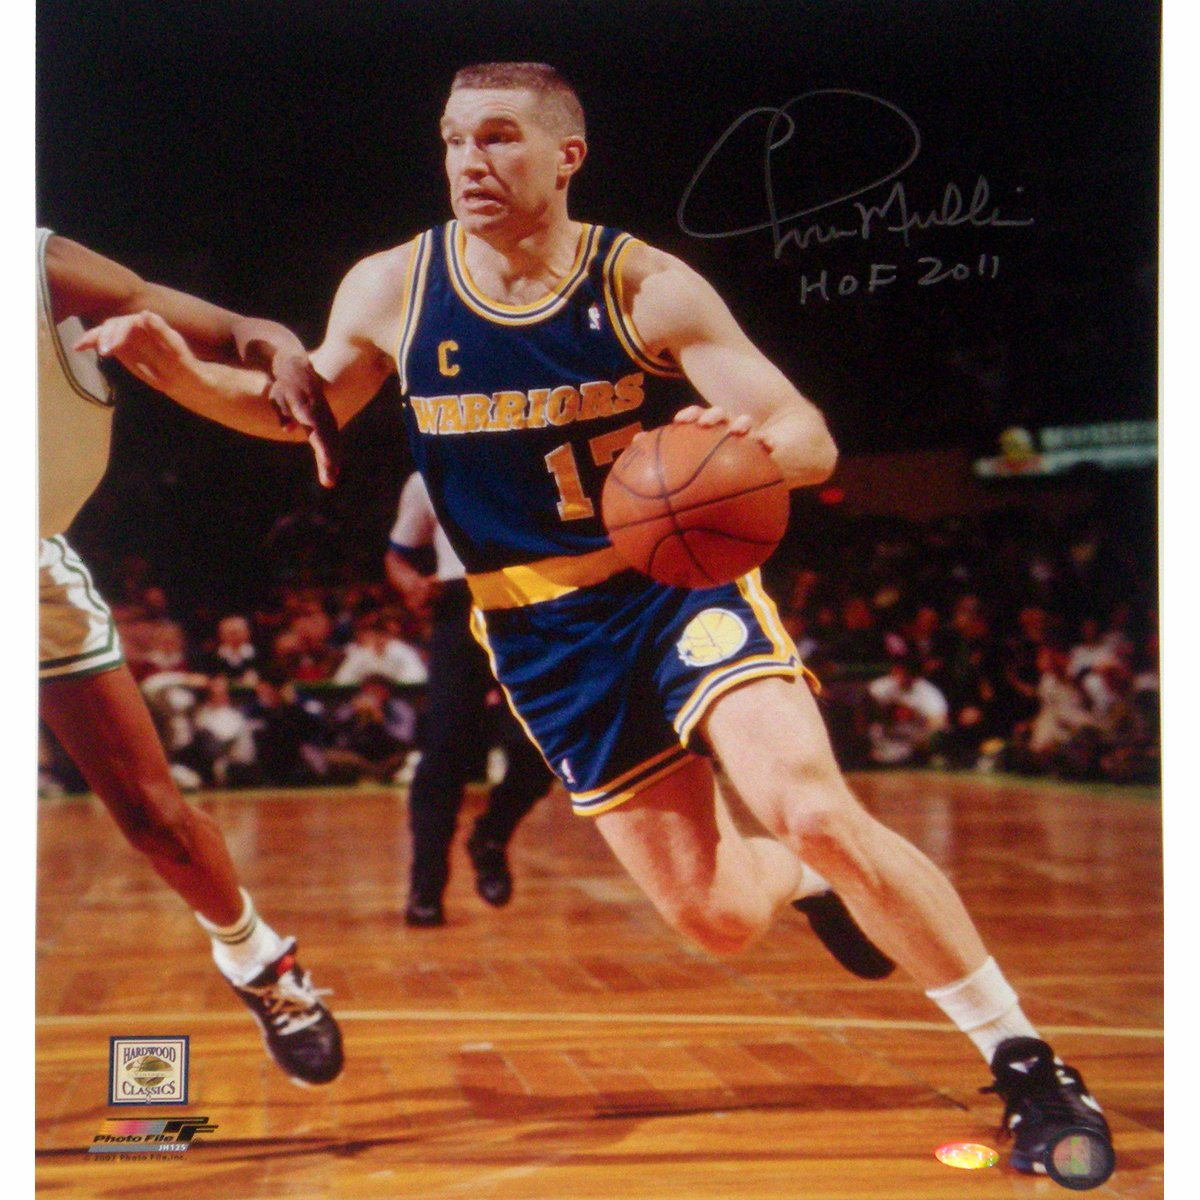 NBA Golden State Warriors Chris Mullin Drive to Basket Left Handed Vertical Photograph with HOF 2011 Inscription, 6x20-Inch